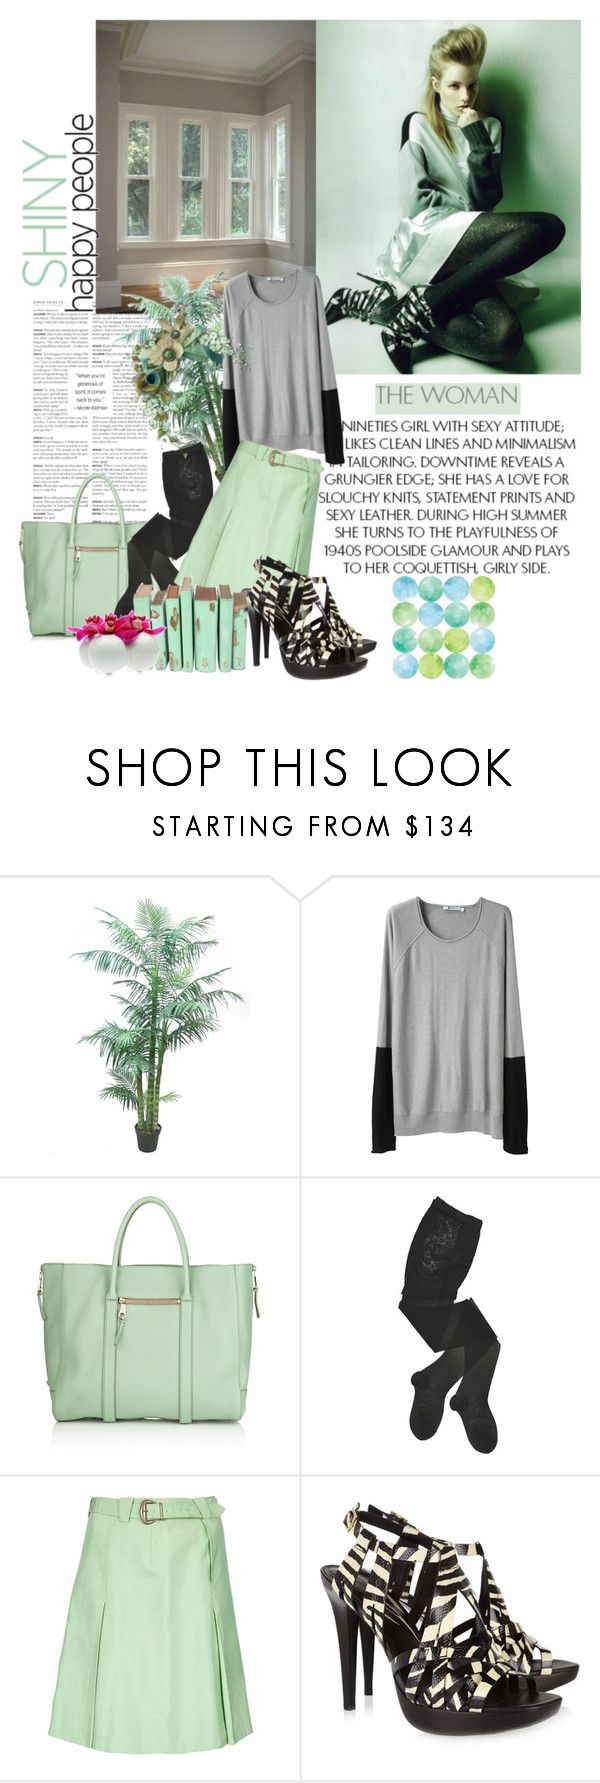 """""""#71"""" by fashionartlover ❤ liked on Polyvore featuring Reiss, T By Alexander Wang, Chloé, HYD, Emilio Pucci, Diane Von Furstenberg, Chive, mint green, vintage skirt and platform high heel"""